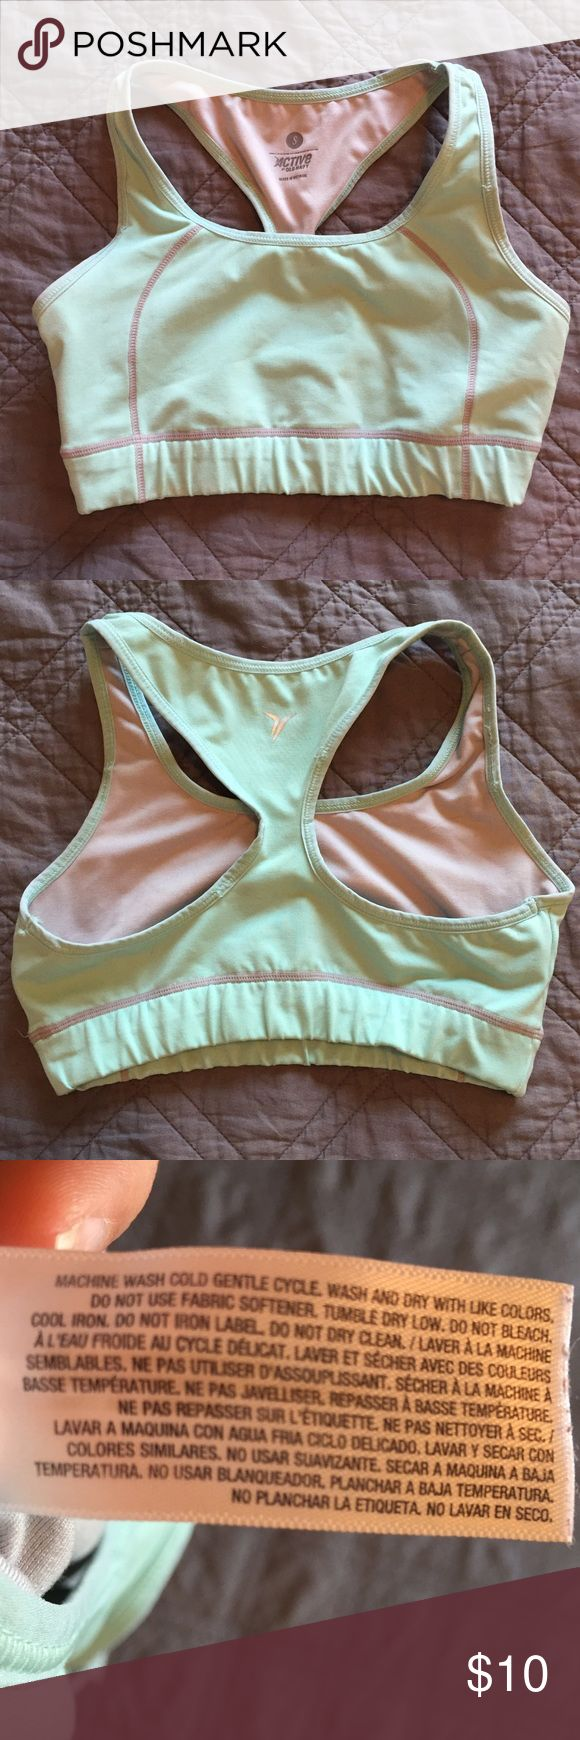 Old Navy Active Mint Green Sports Bra I swear by old navy sports bras. They last forever, and they provide excellent support.  very lightly pre-worn. Excellent condition. Old Navy Intimates & Sleepwear Bras